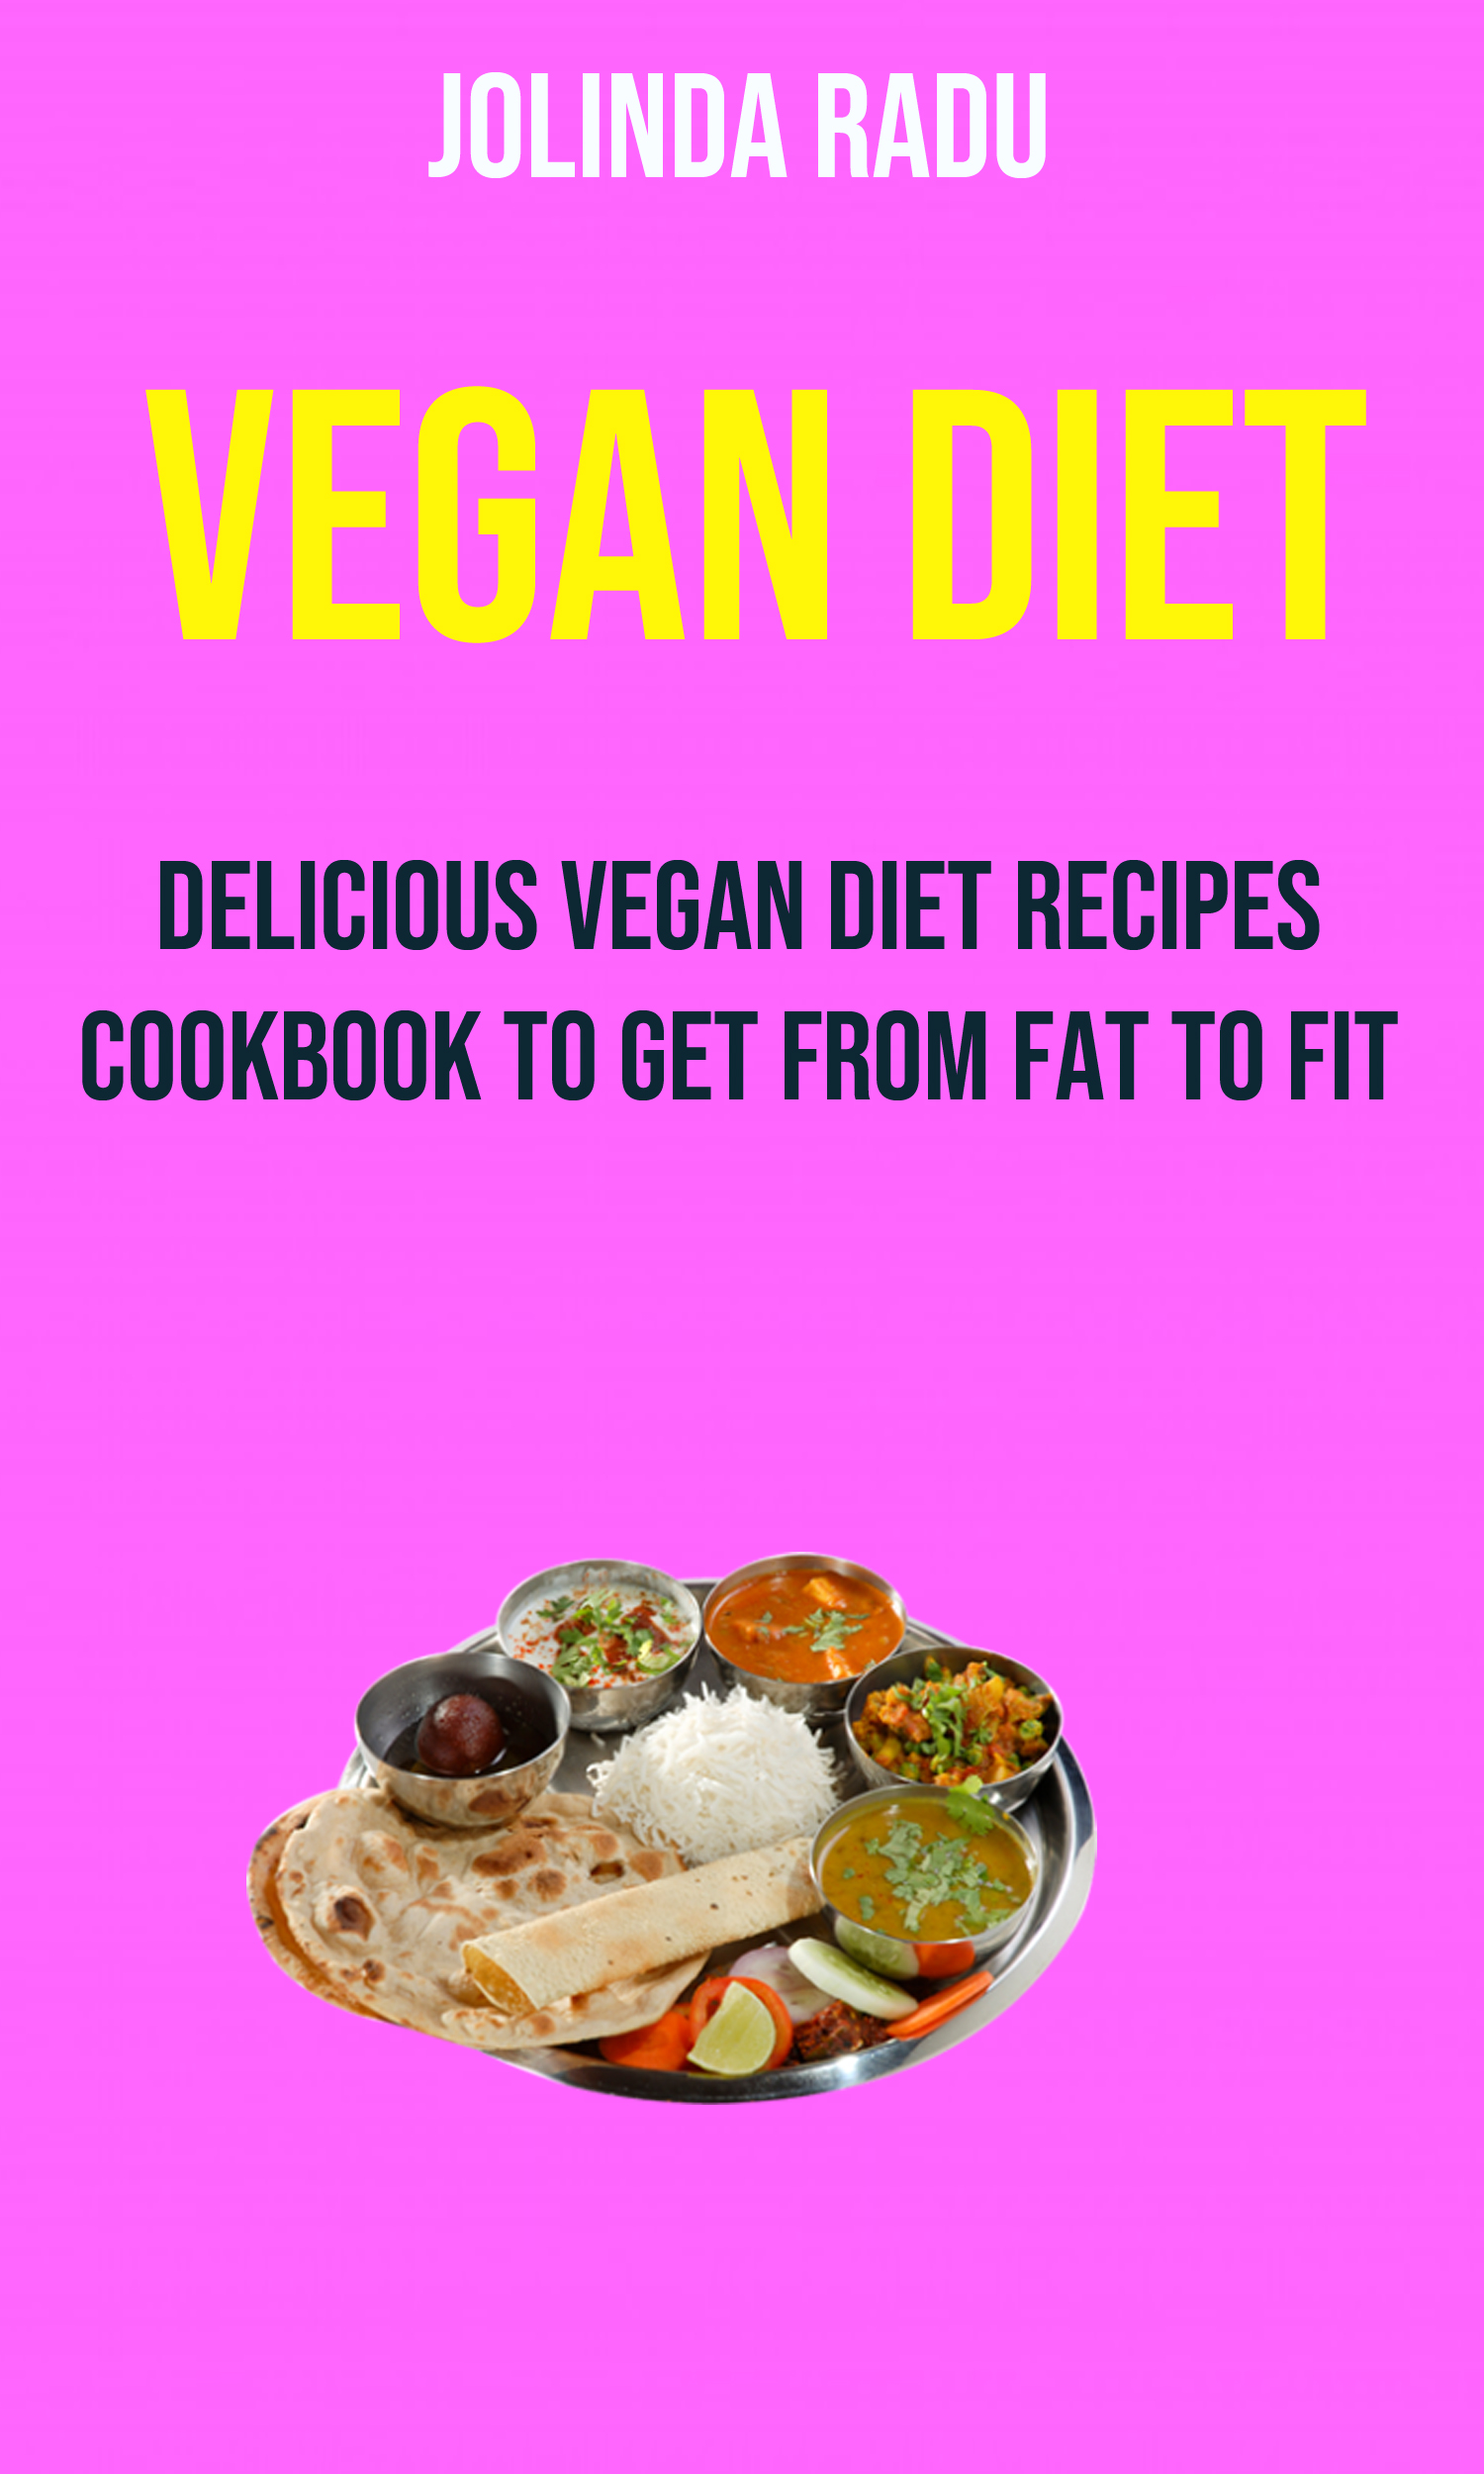 Vegan diet: delicious vegan diet recipes cookbook to get from fat to fit